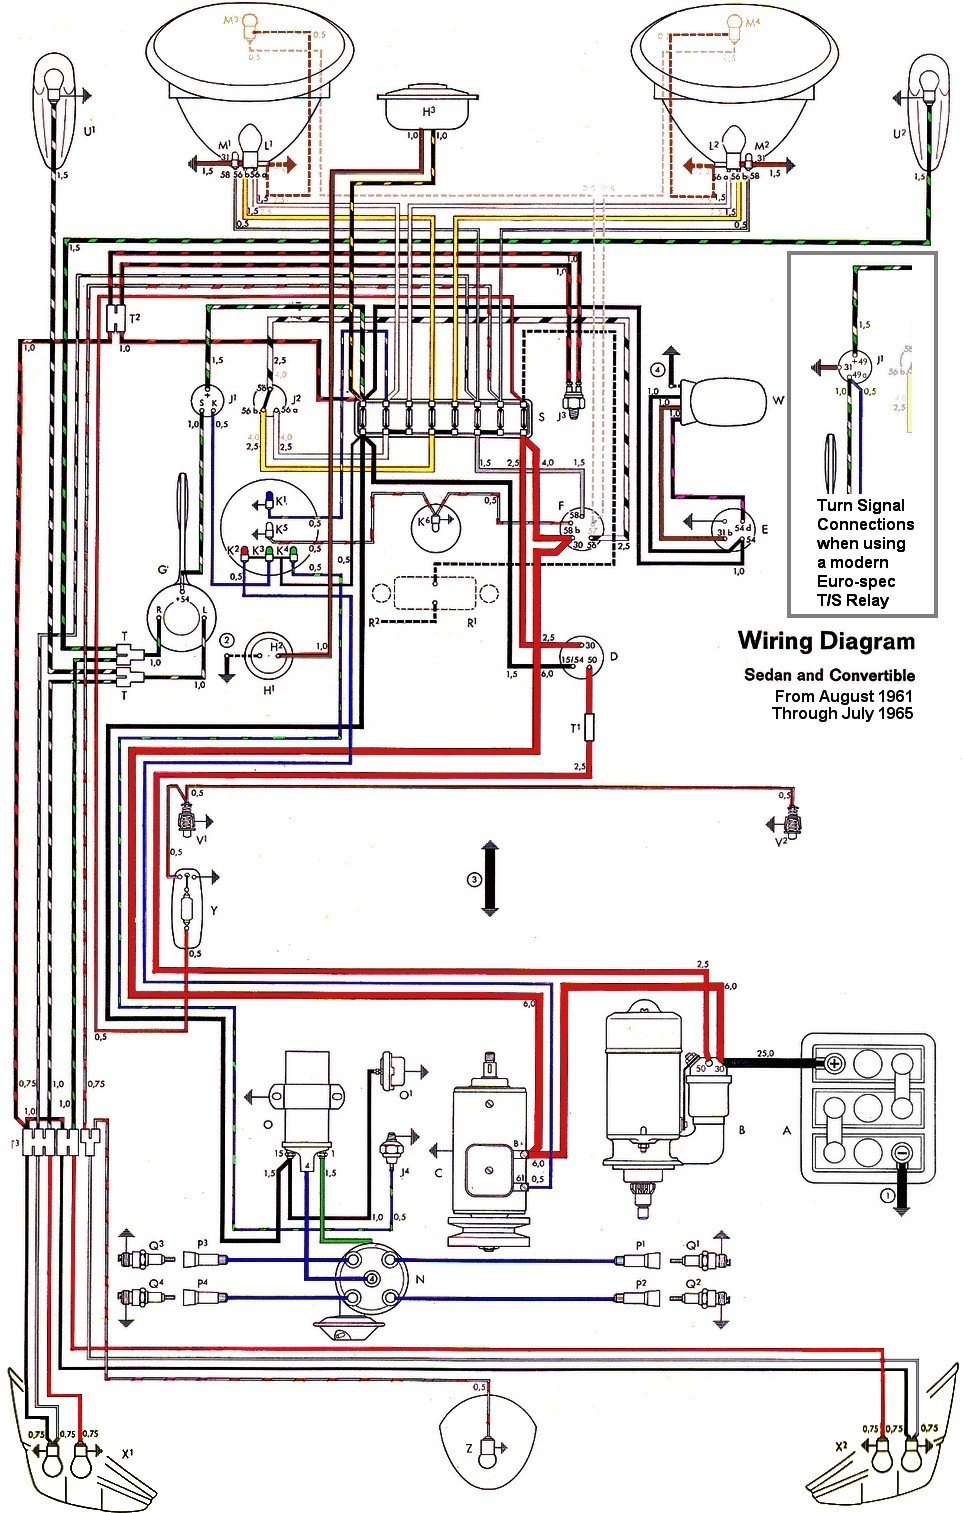 thesamba com type 1 wiring diagrams rh thesamba com  1963 vw beetle wiring diagram